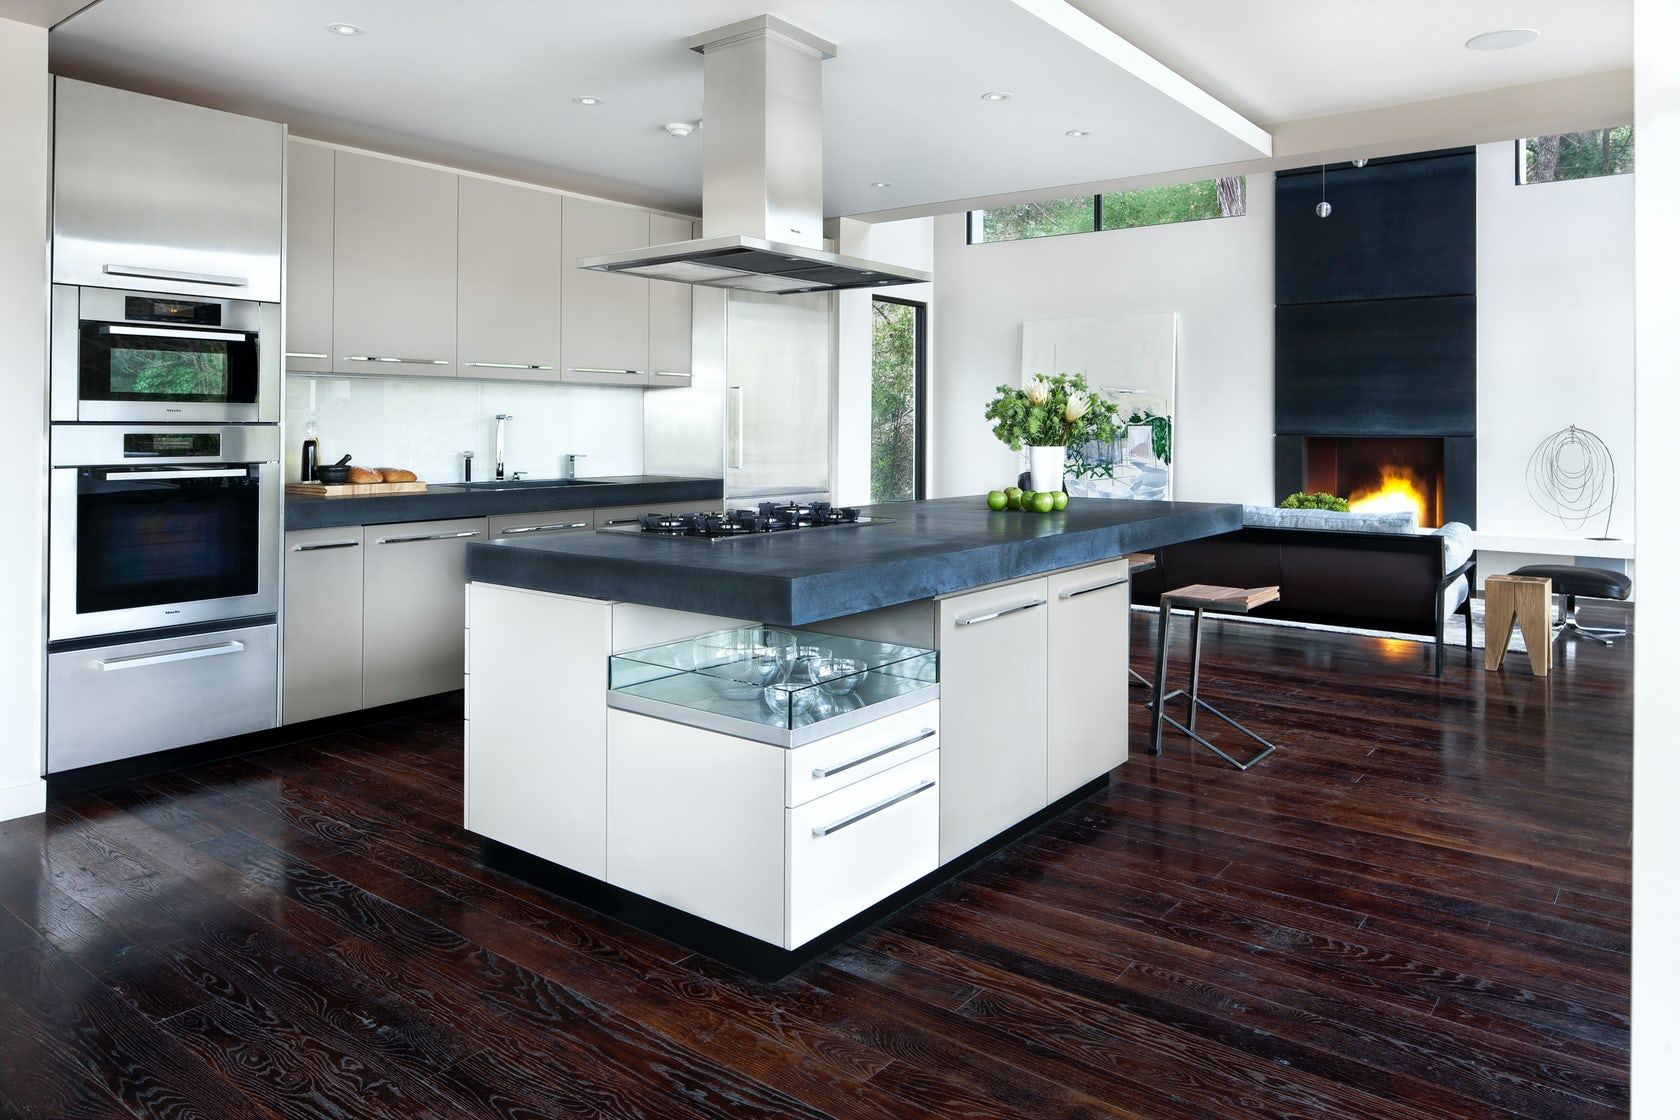 Miele Kitchen By Tamie Glass Amp Uli Danel Architizer